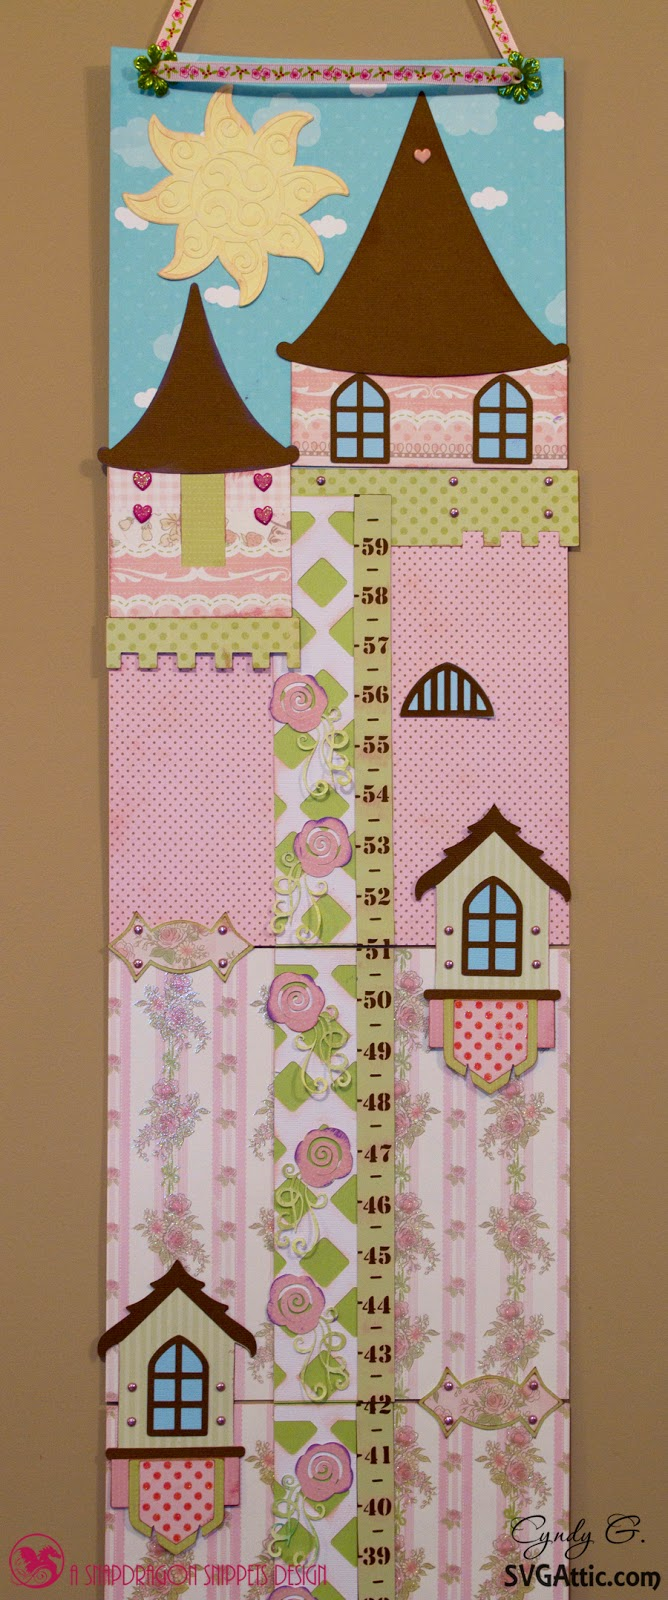 A child's growth chart for a girl.  Princess castle with rose vine ruler.